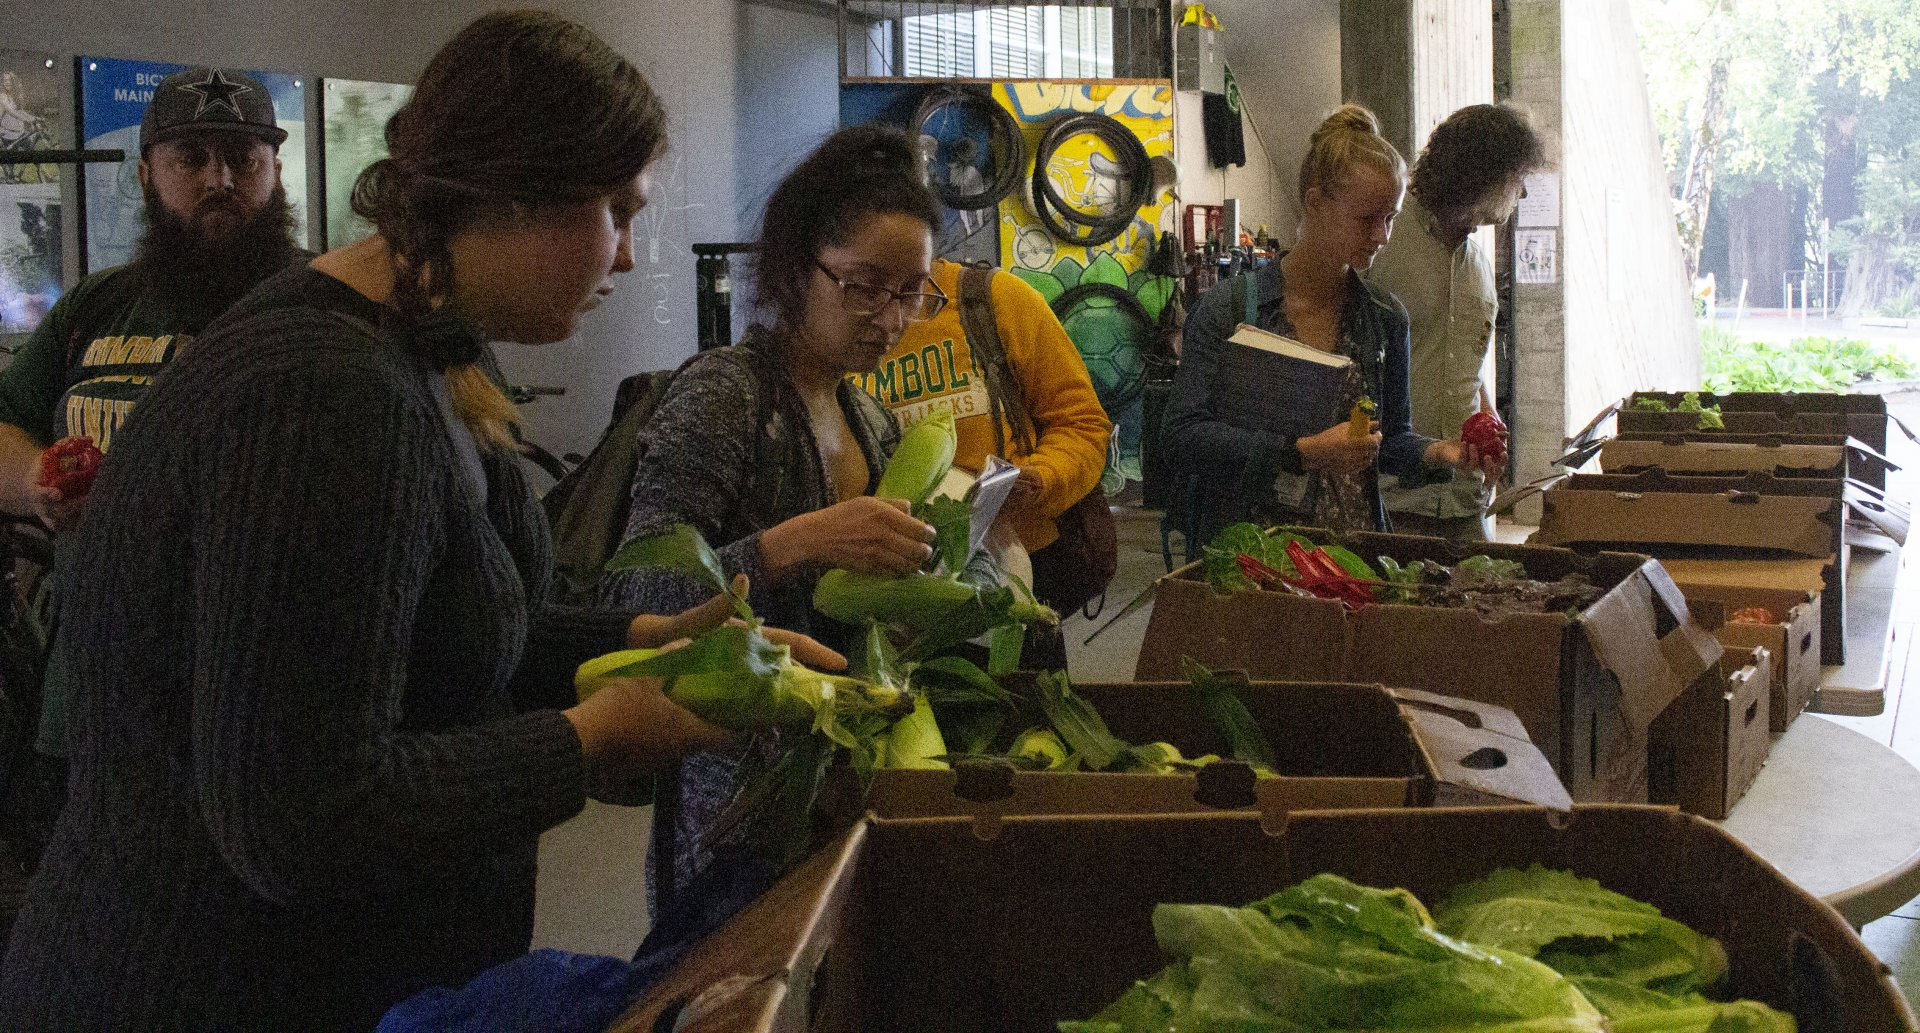 Students sorting through fresh produce at the Oh SNAP! farm stand on Wed., Sept. 25. | Photo Alberto Muro